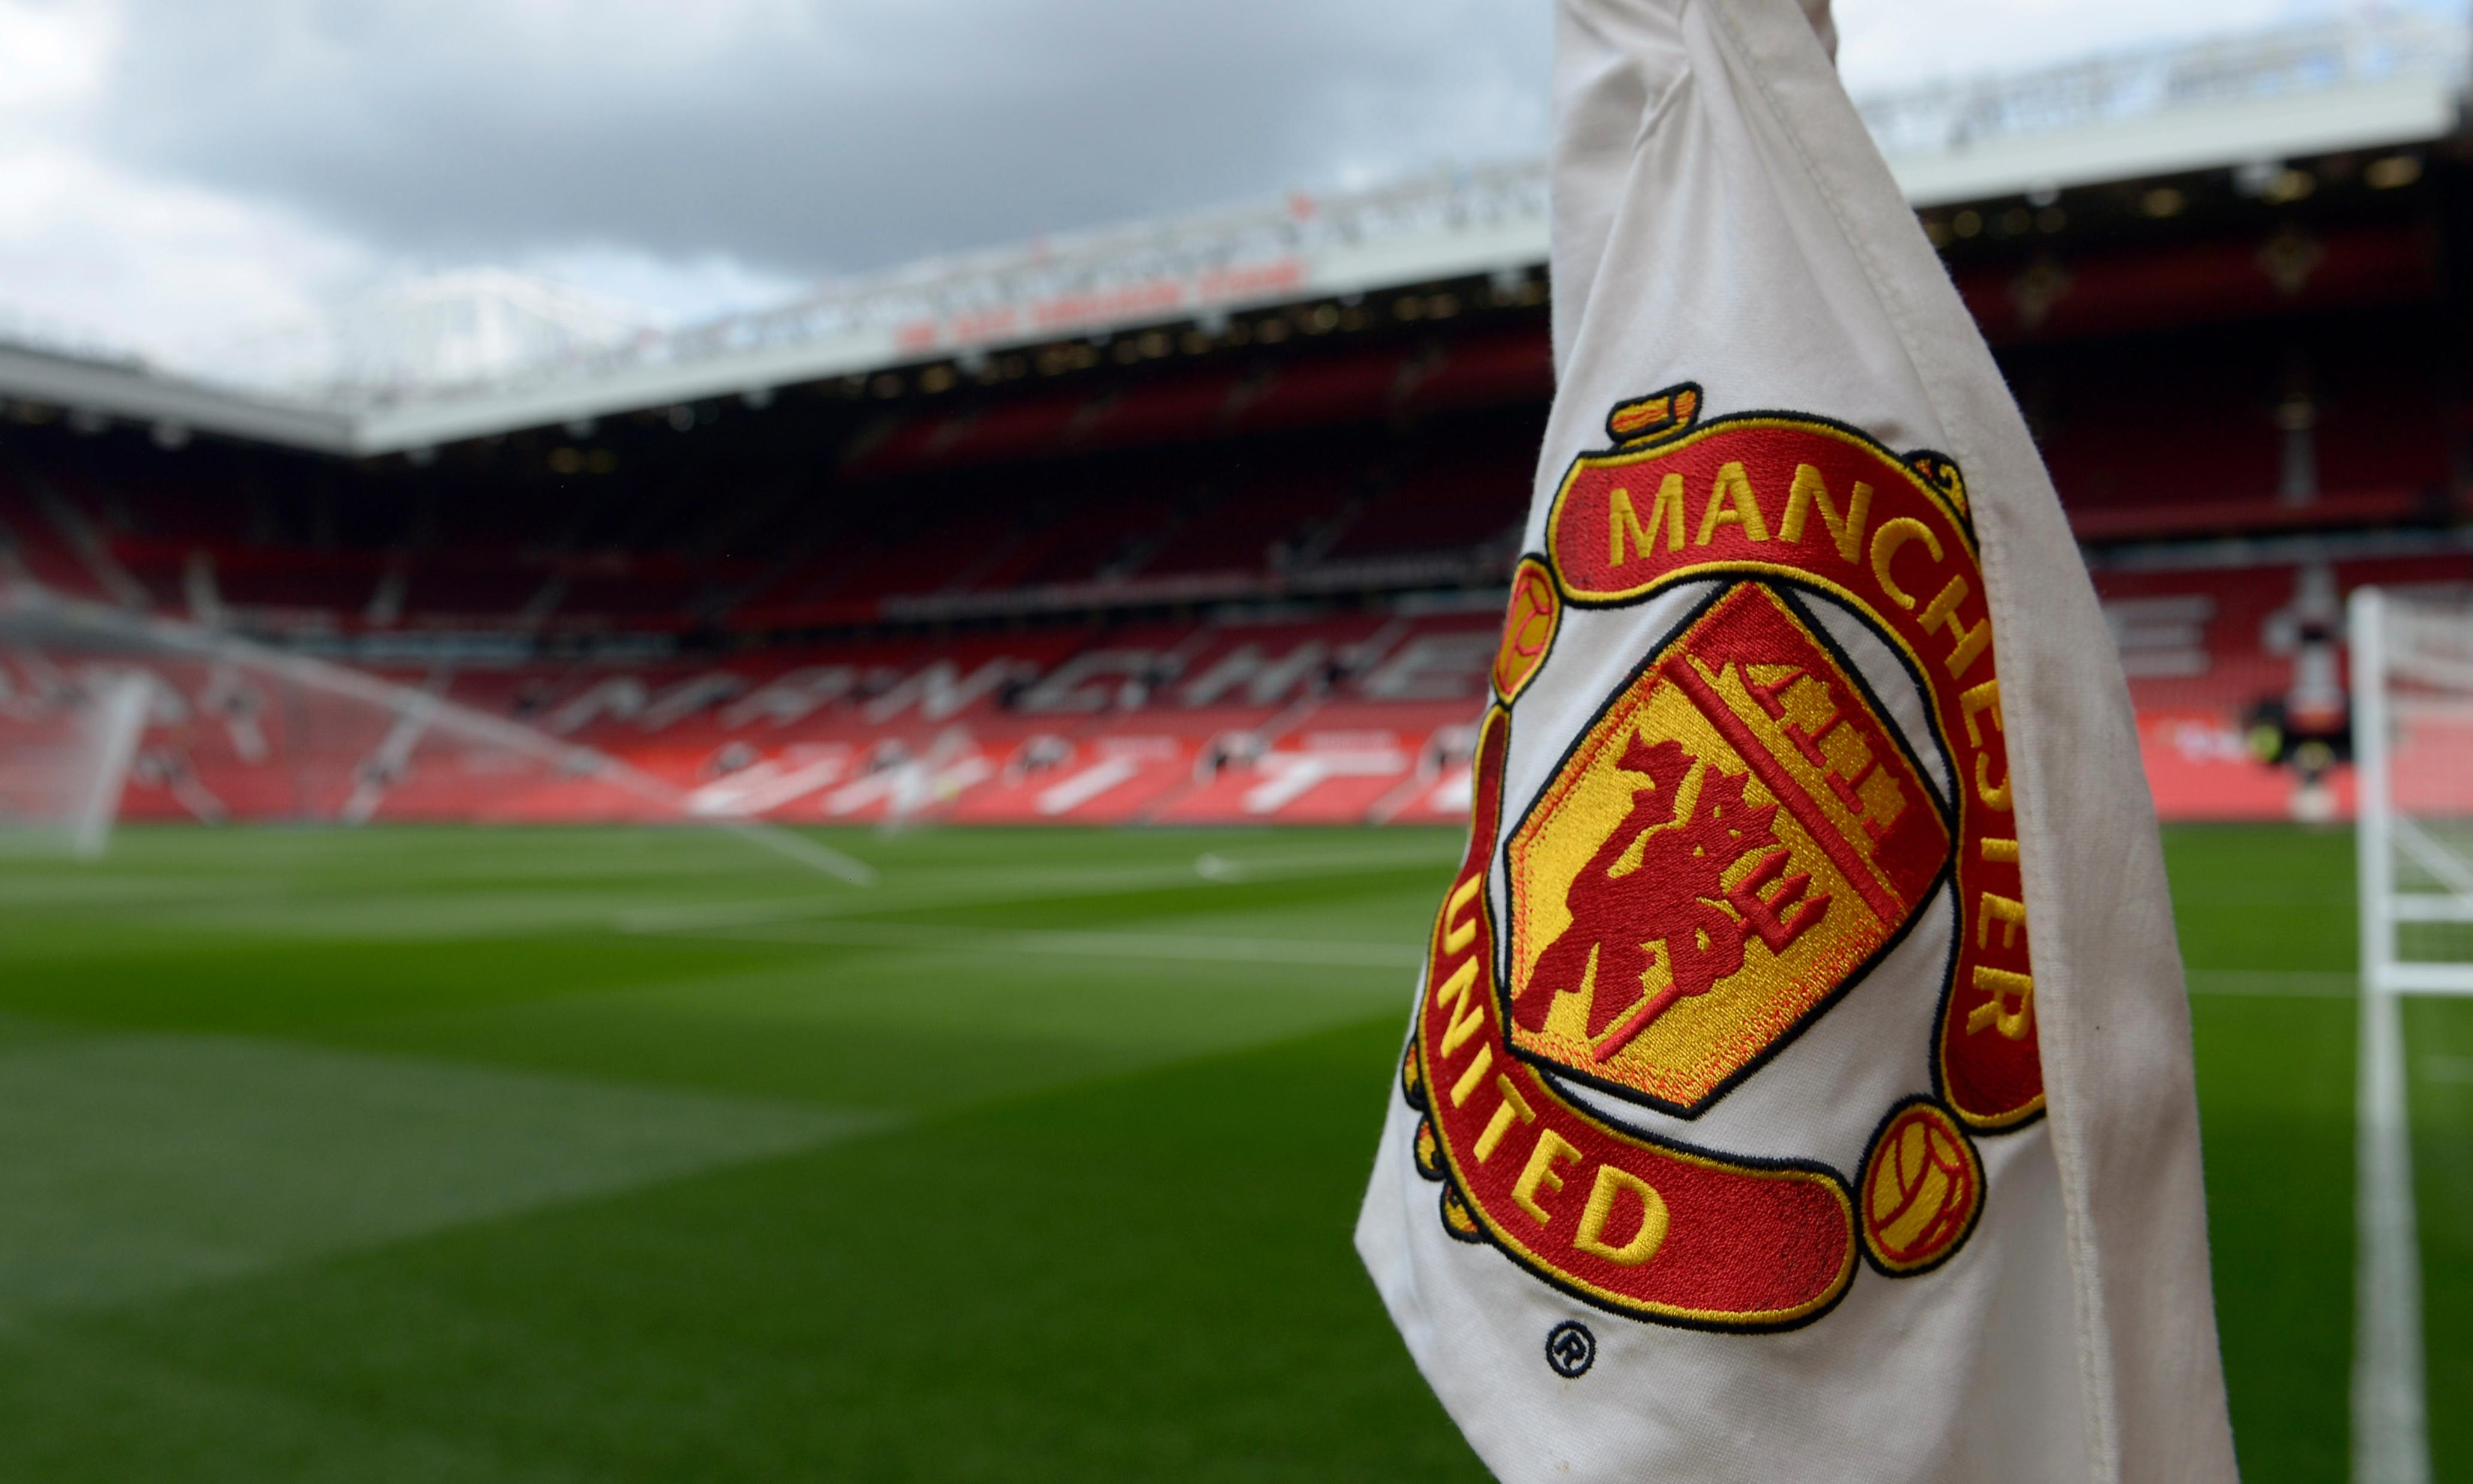 Manchester United cast the net with new emerging local talent programme